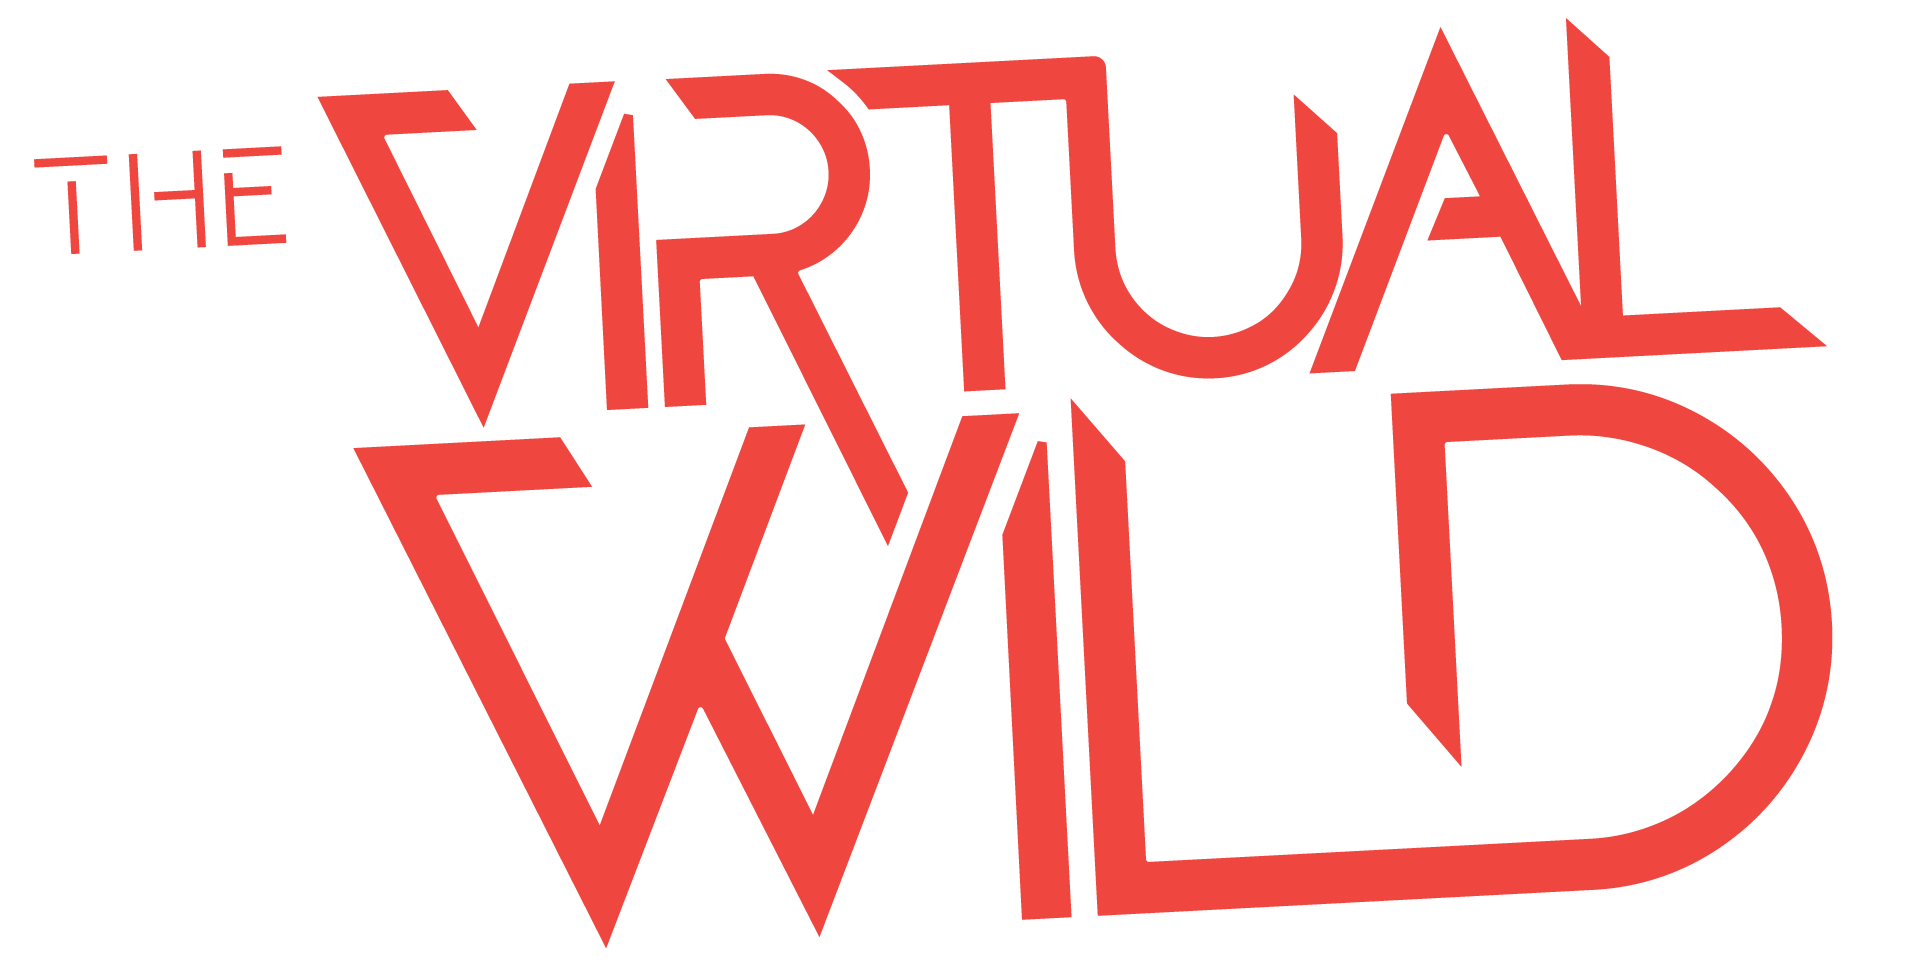 TheVirtualWild-HiResLogo.png